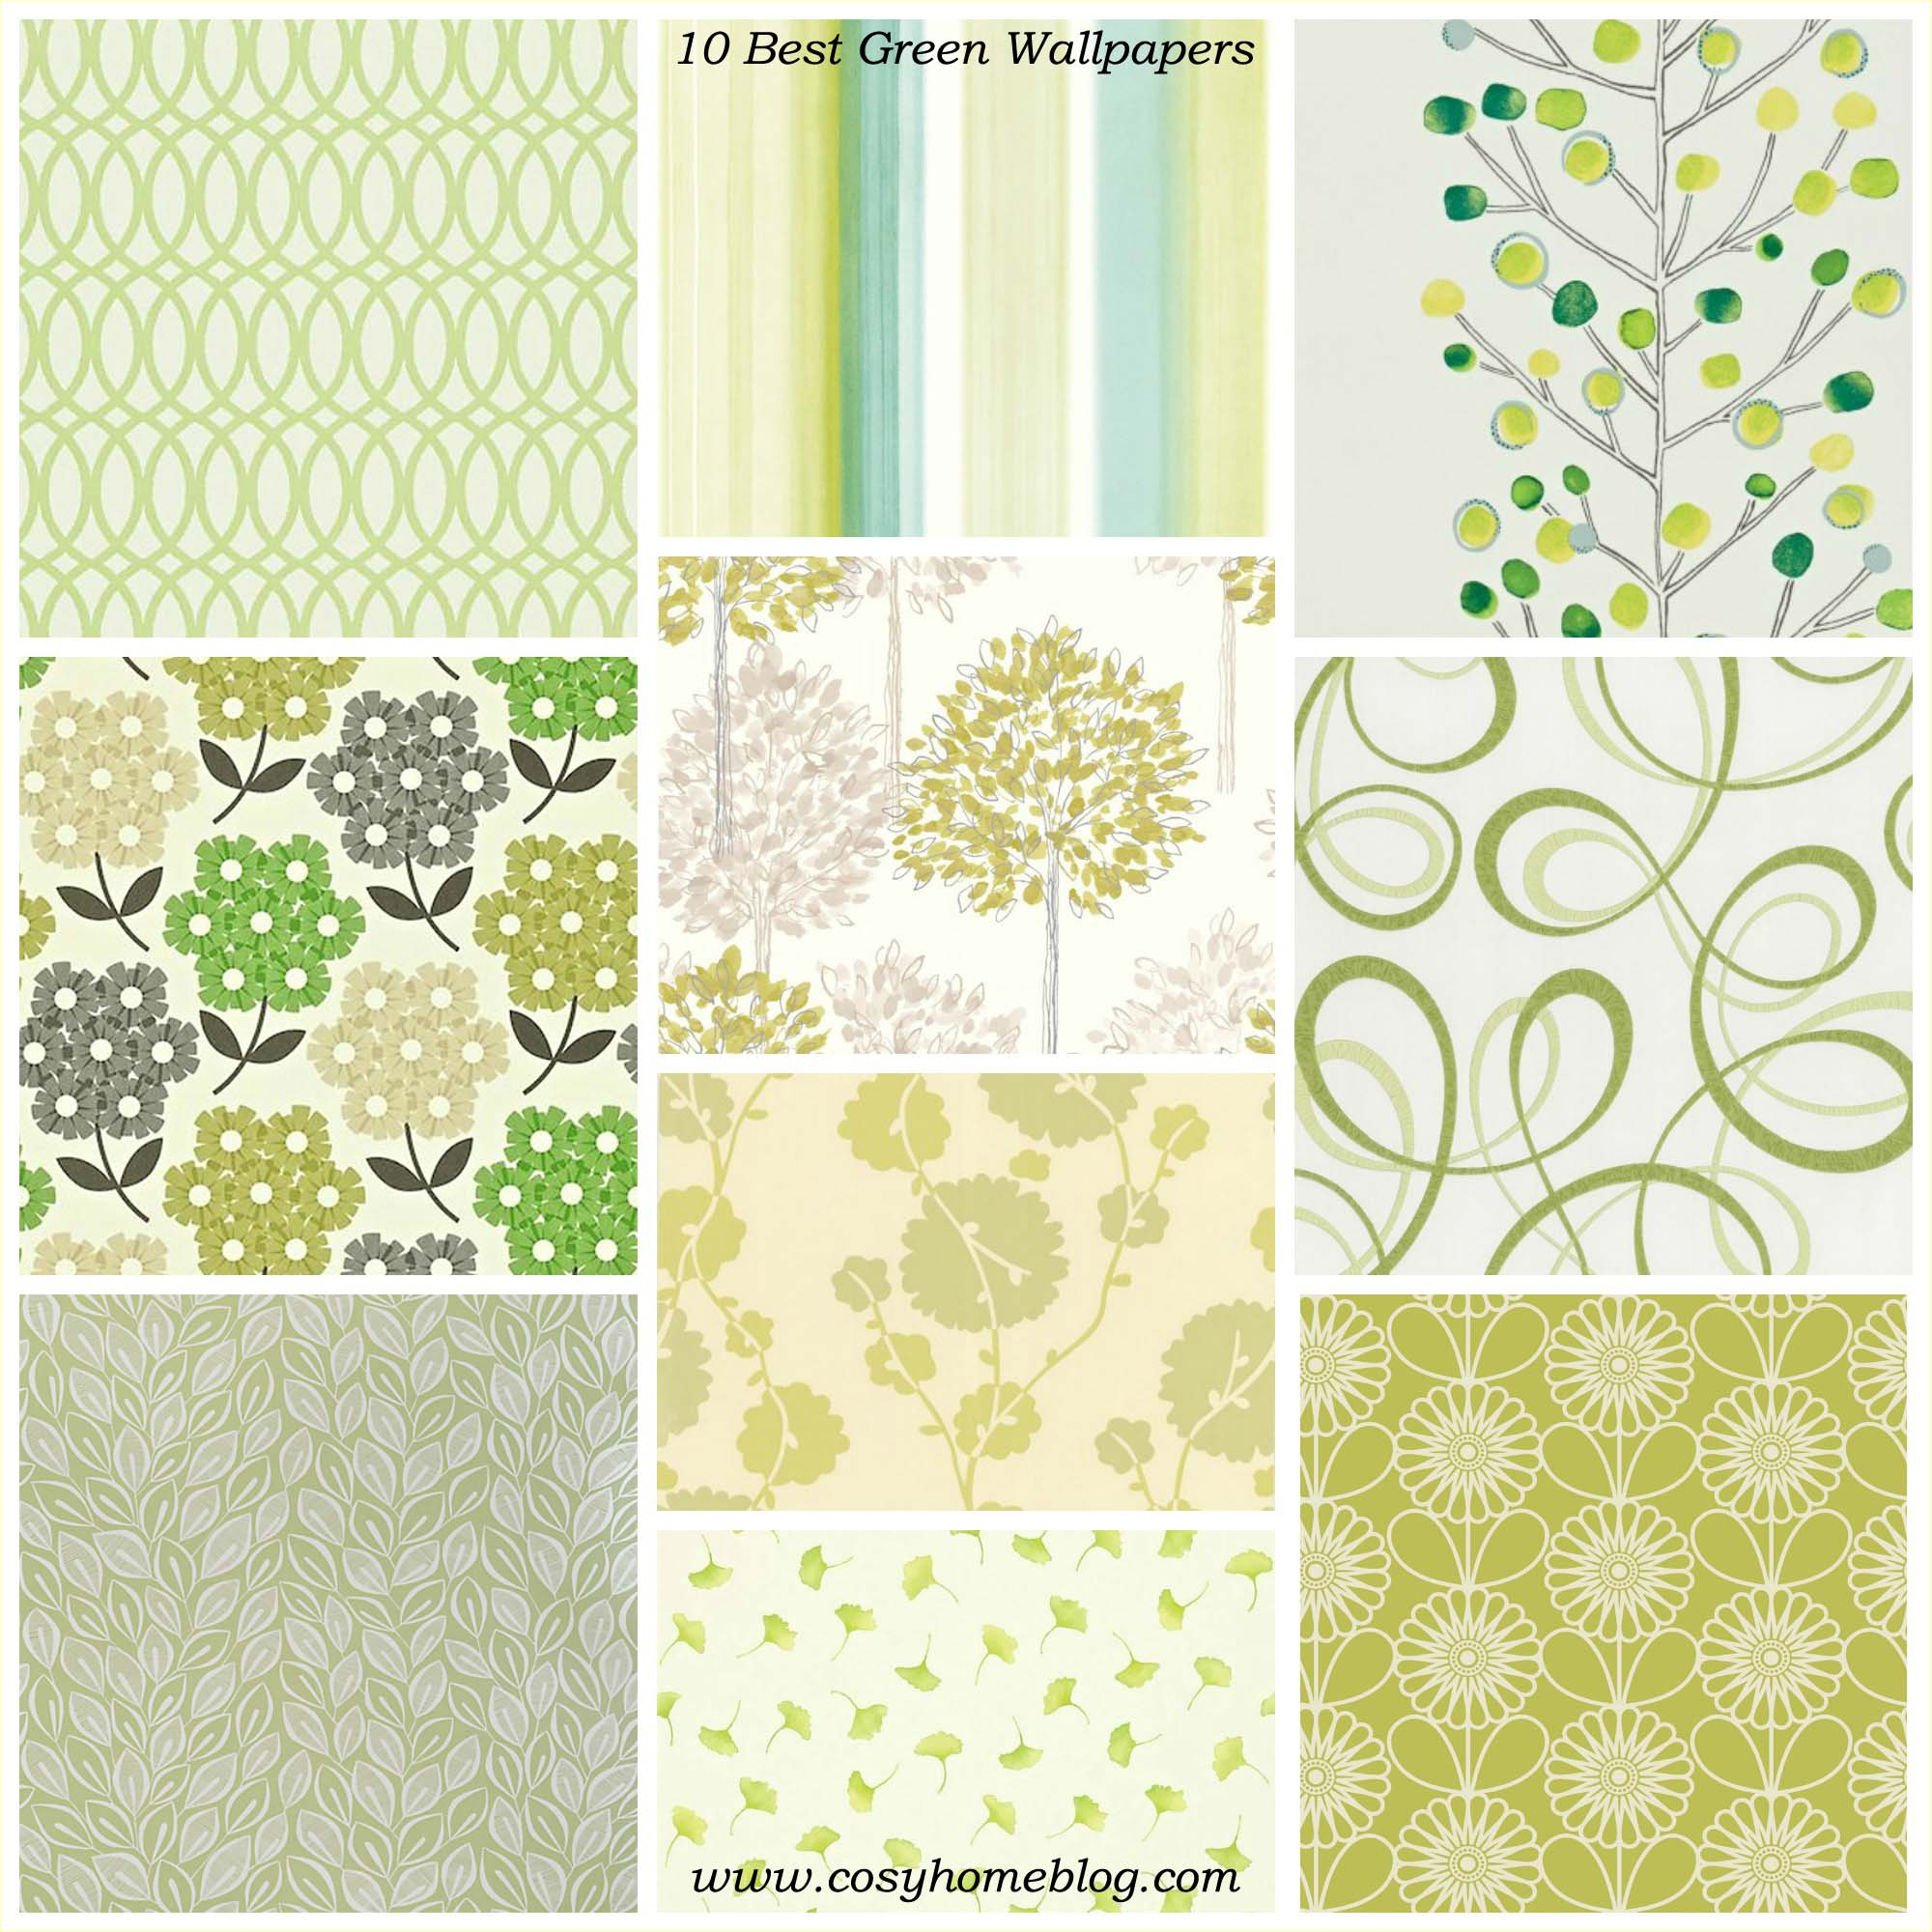 Spring greens 10 green wallpaper decorating ideas for Decorators best wallpaper